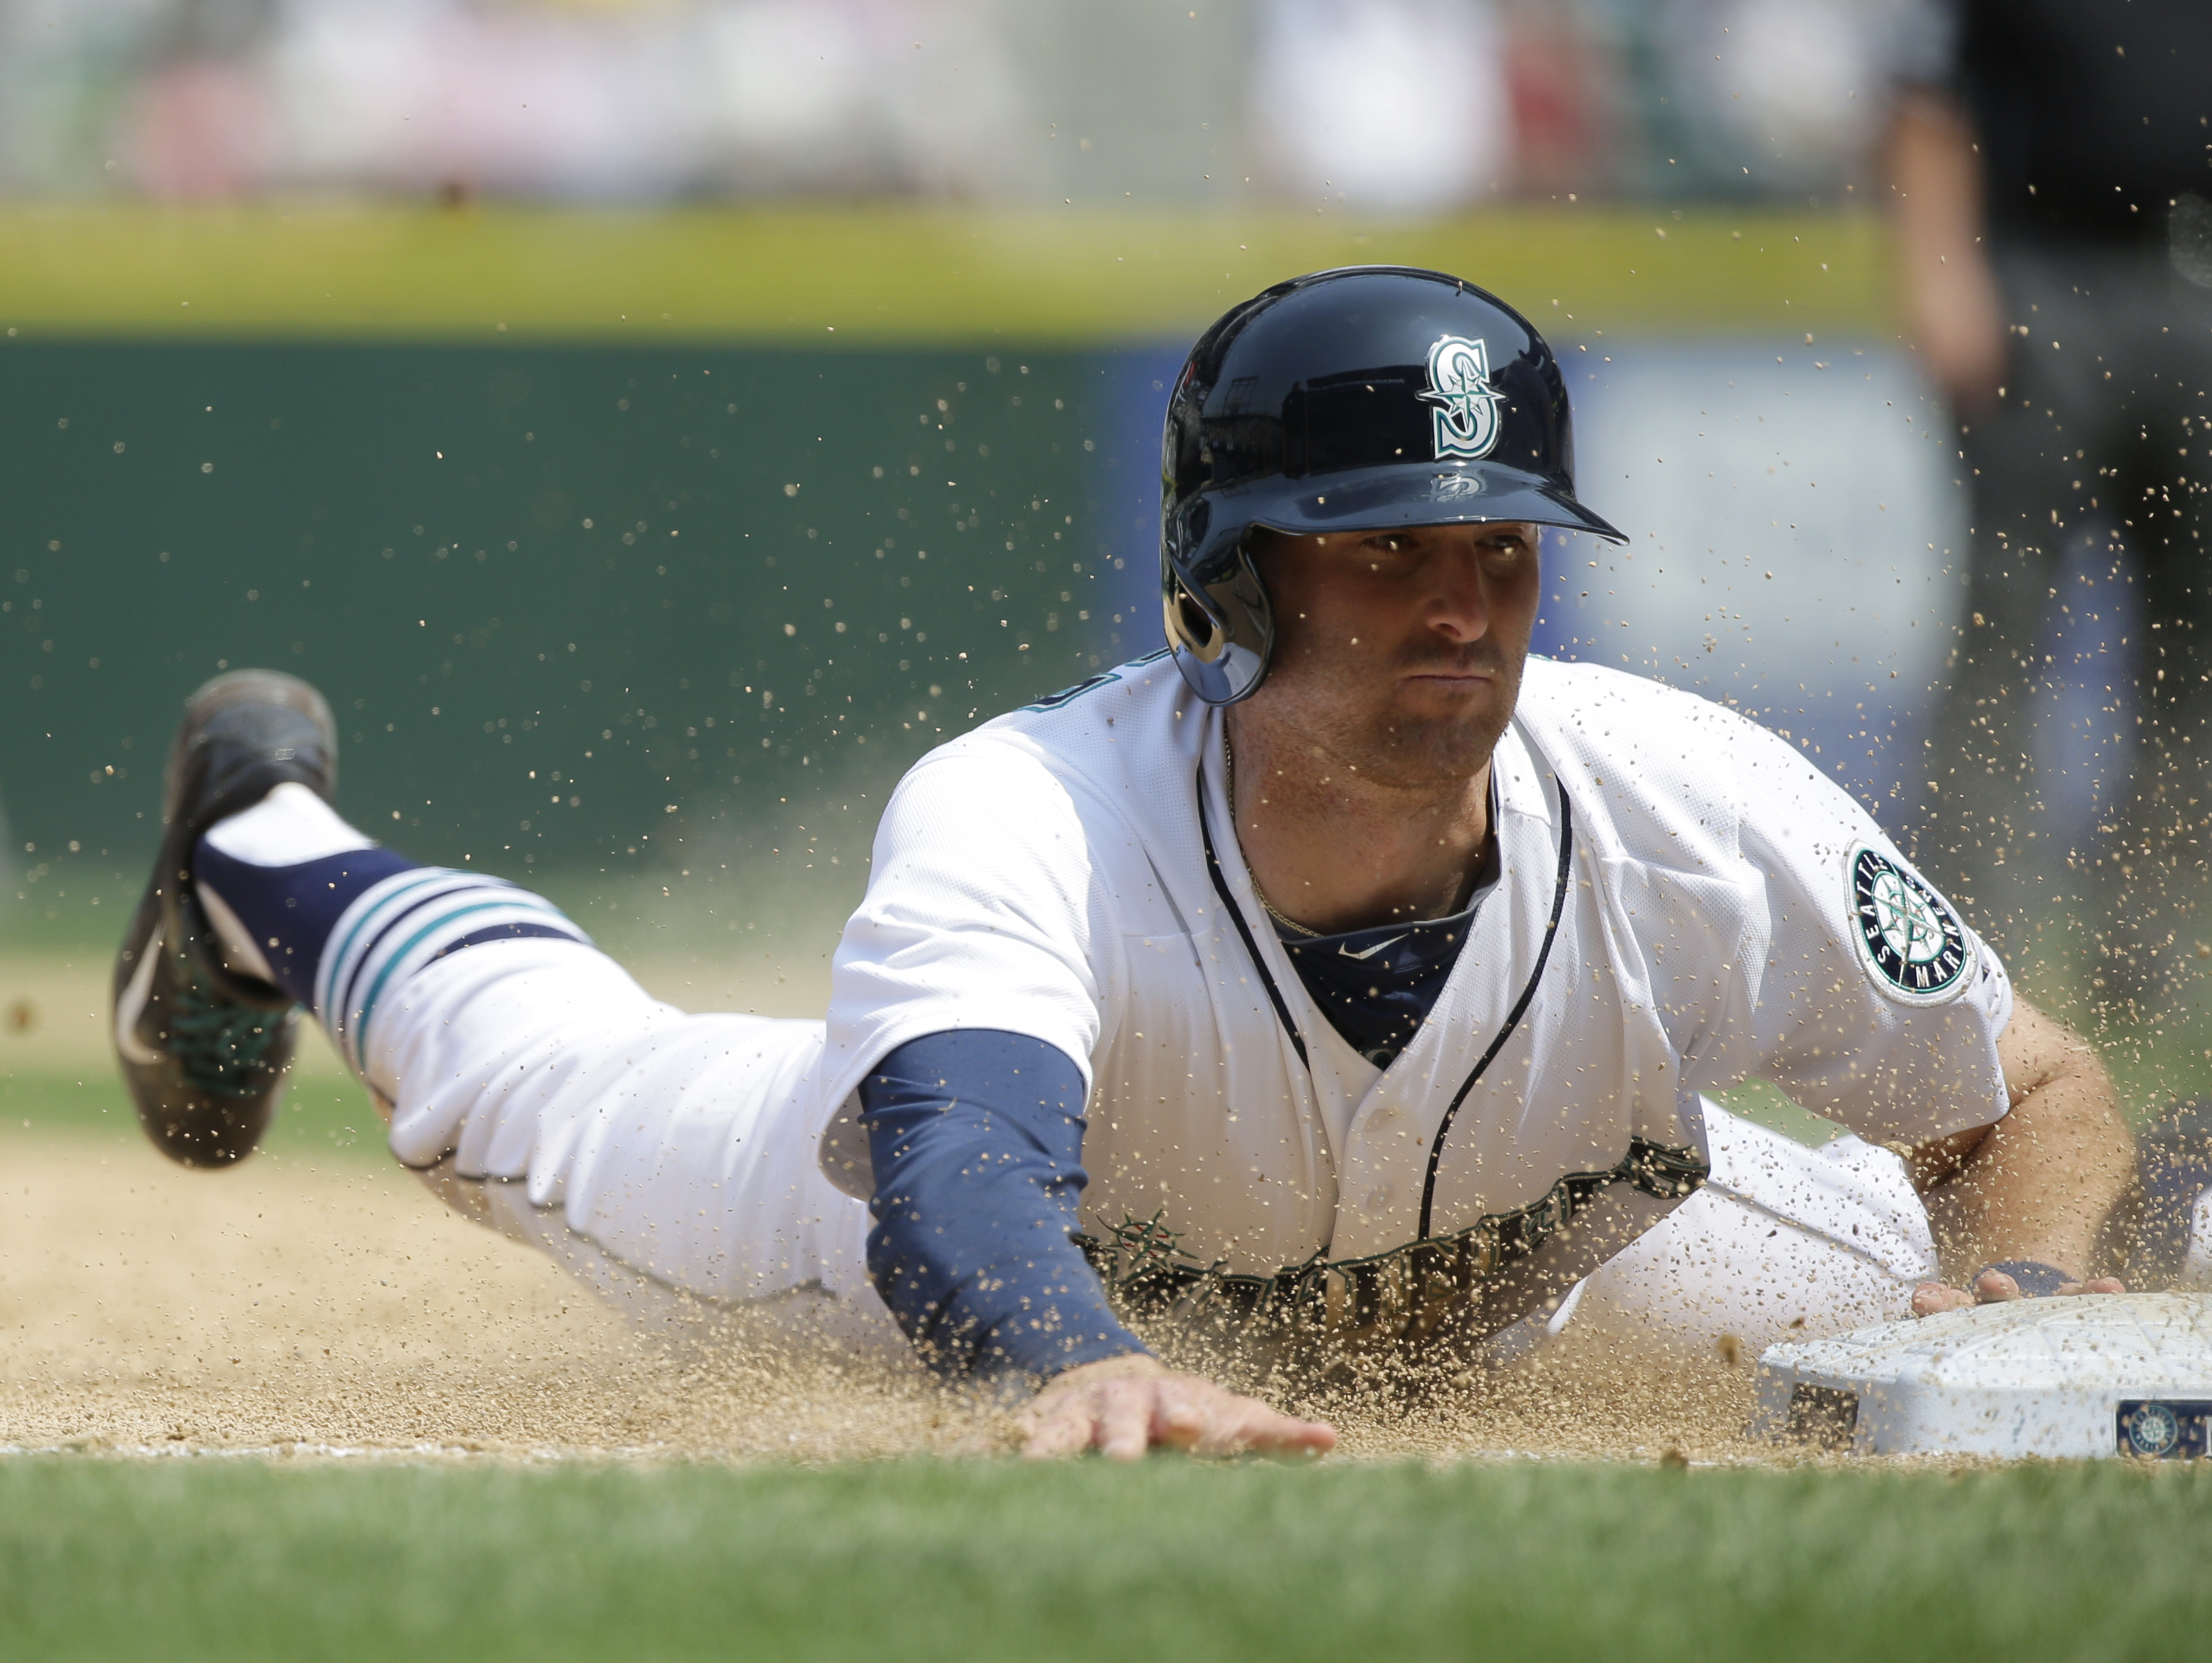 Seattle Mariners' Brad Miller steals third base during the sixth inning of a baseball game against the Detroit Tigers, Wednesday, July 8, 2015, in Seattle. (AP Photo/Ted S. Warren)